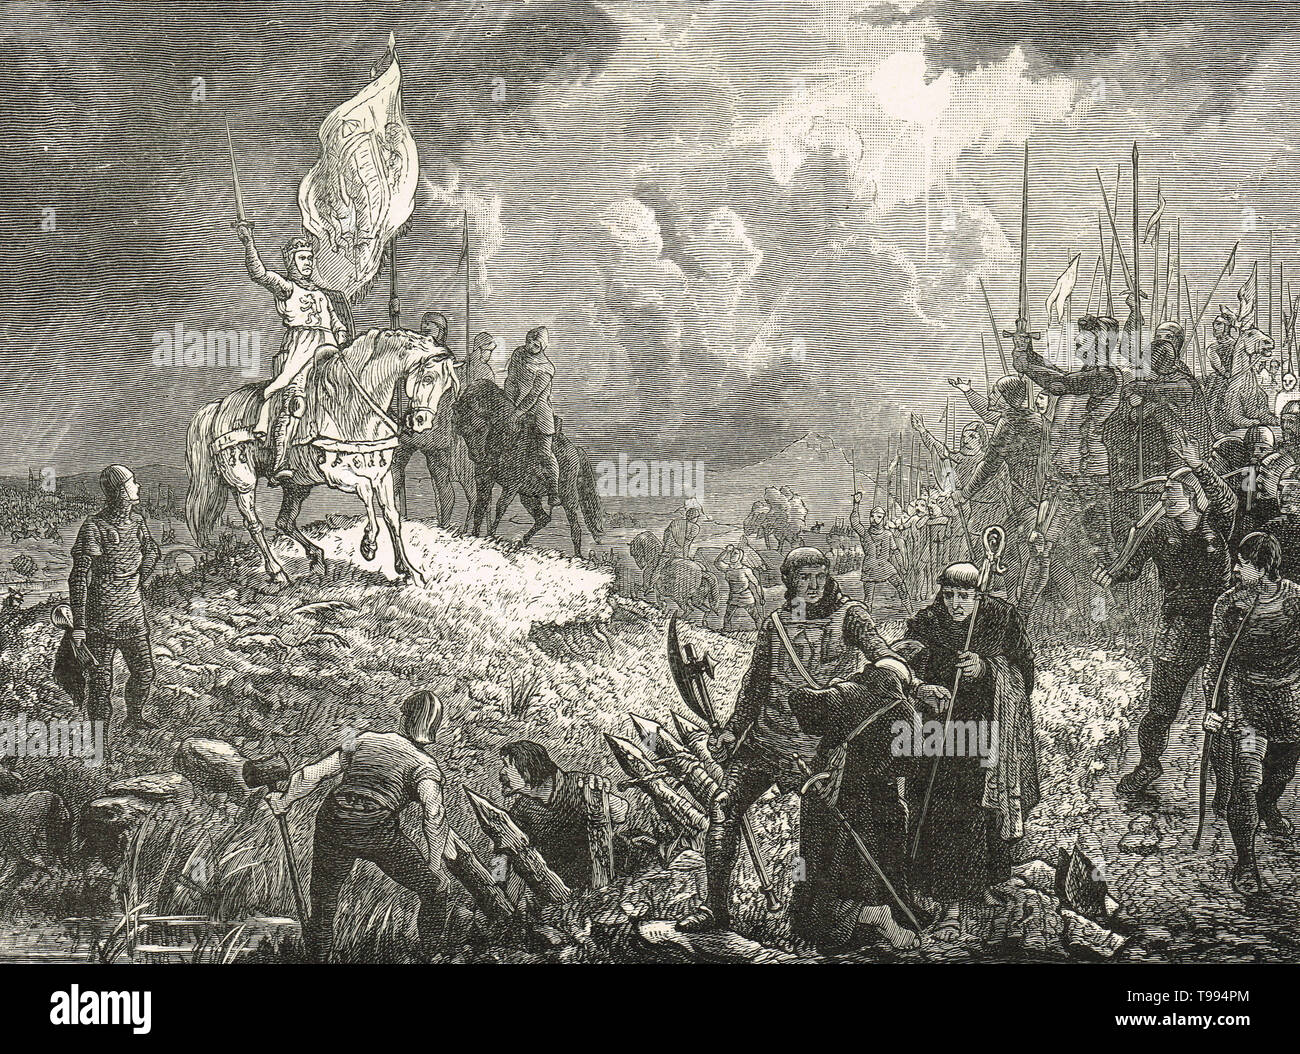 Robert the Bruce addressing his troops, Battle of Bannockburn, 24 June 1314 - Stock Image